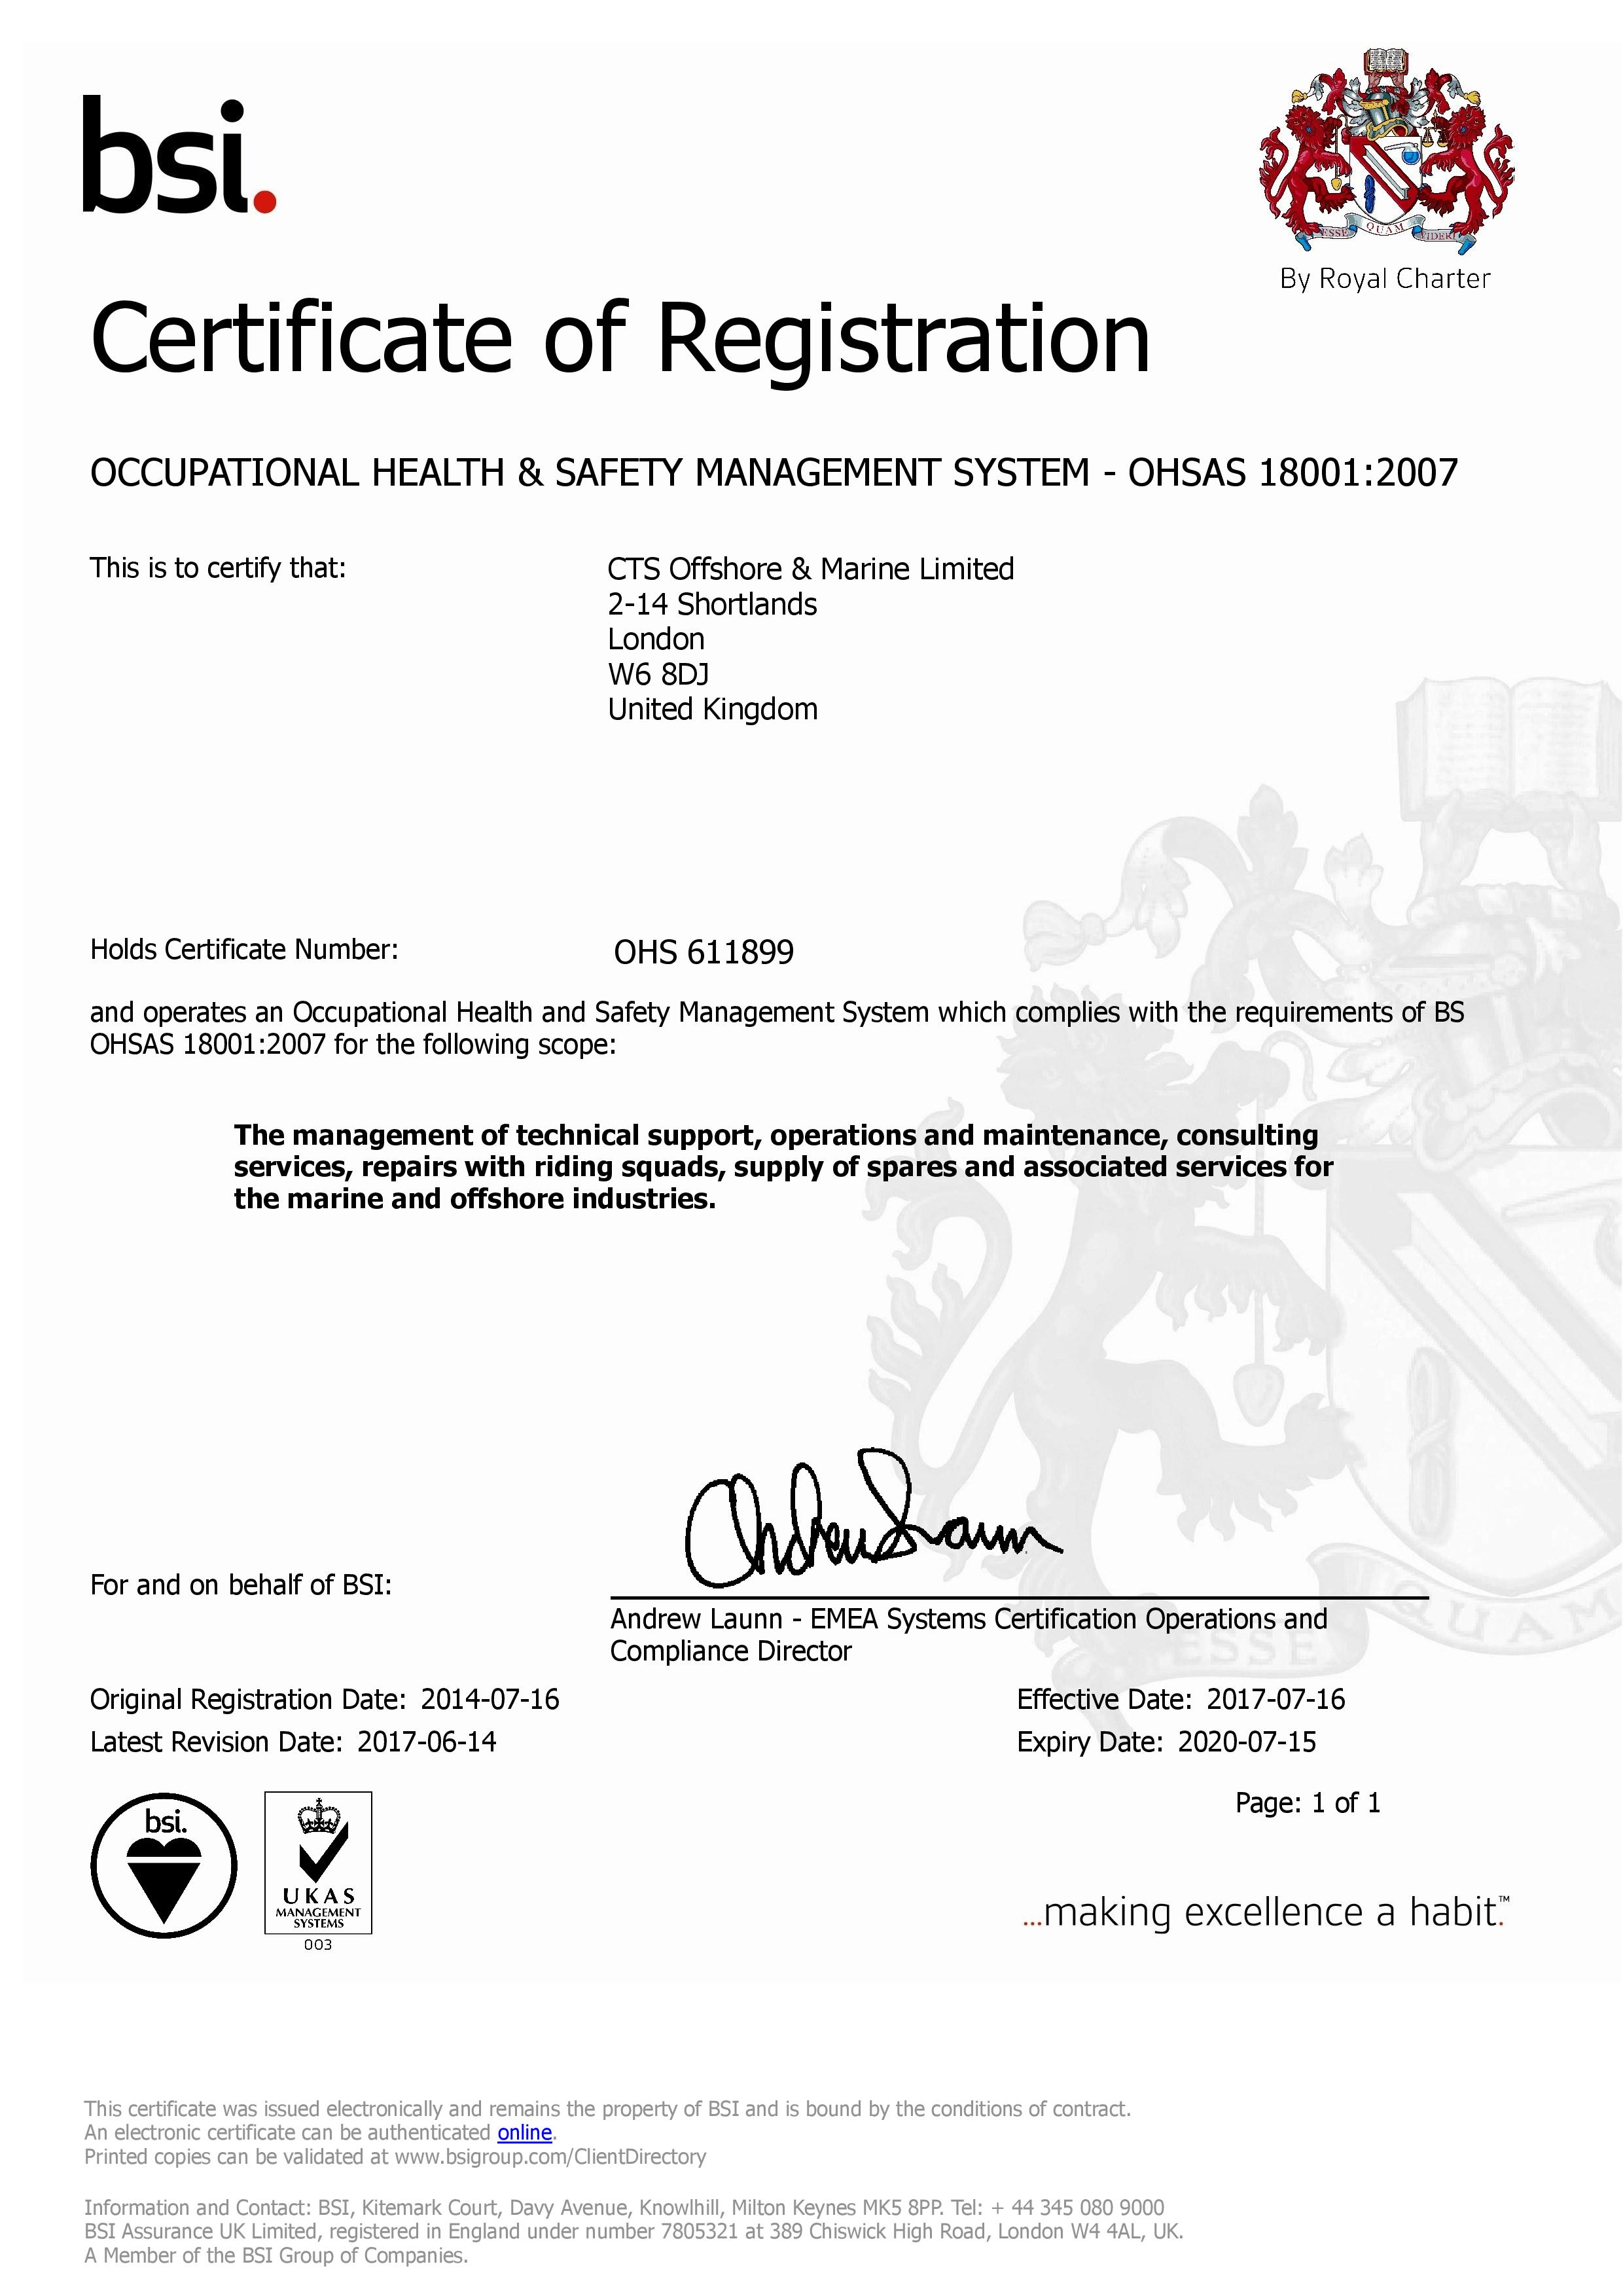 ISO 18001 Certificate | CTS Offshore and Marine Limited